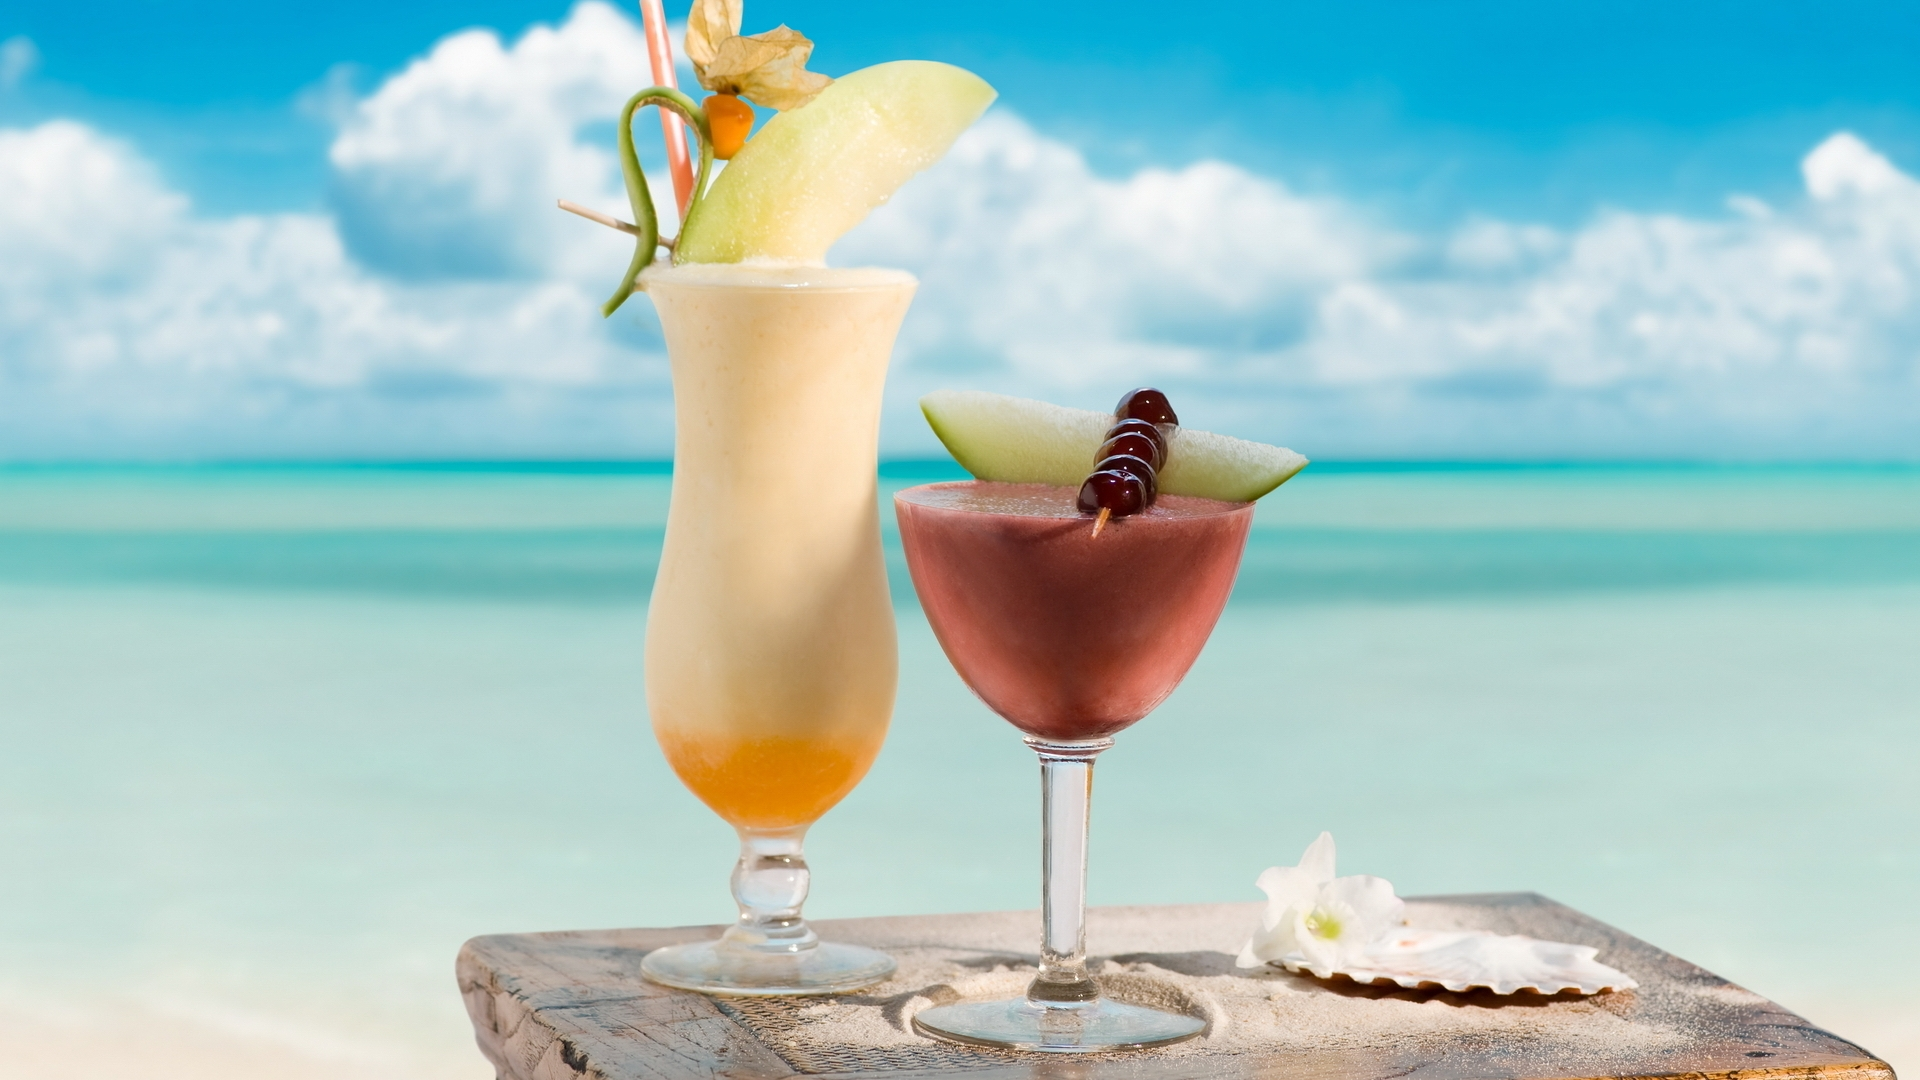 Beach Drinks Best Hd Wallpapers Free Downloaded For